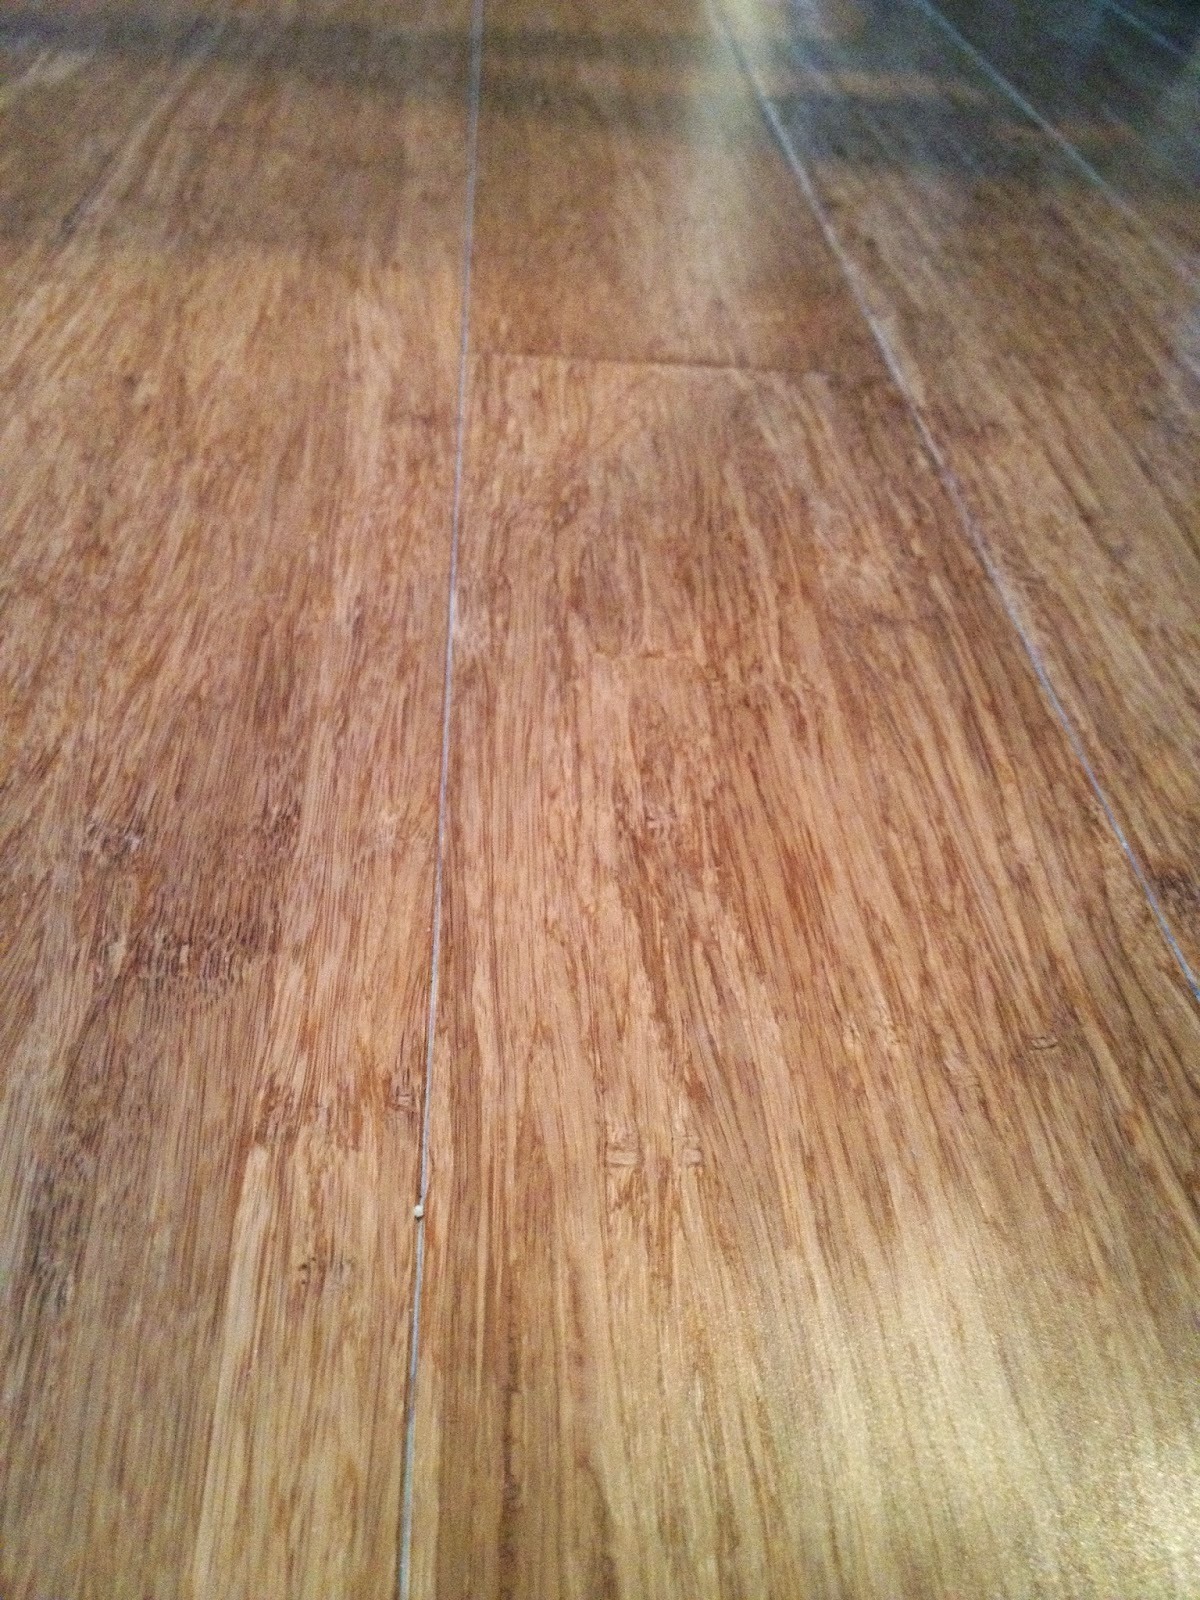 Fuzzy Side Up Bamboo flooring What everybody ought to know about